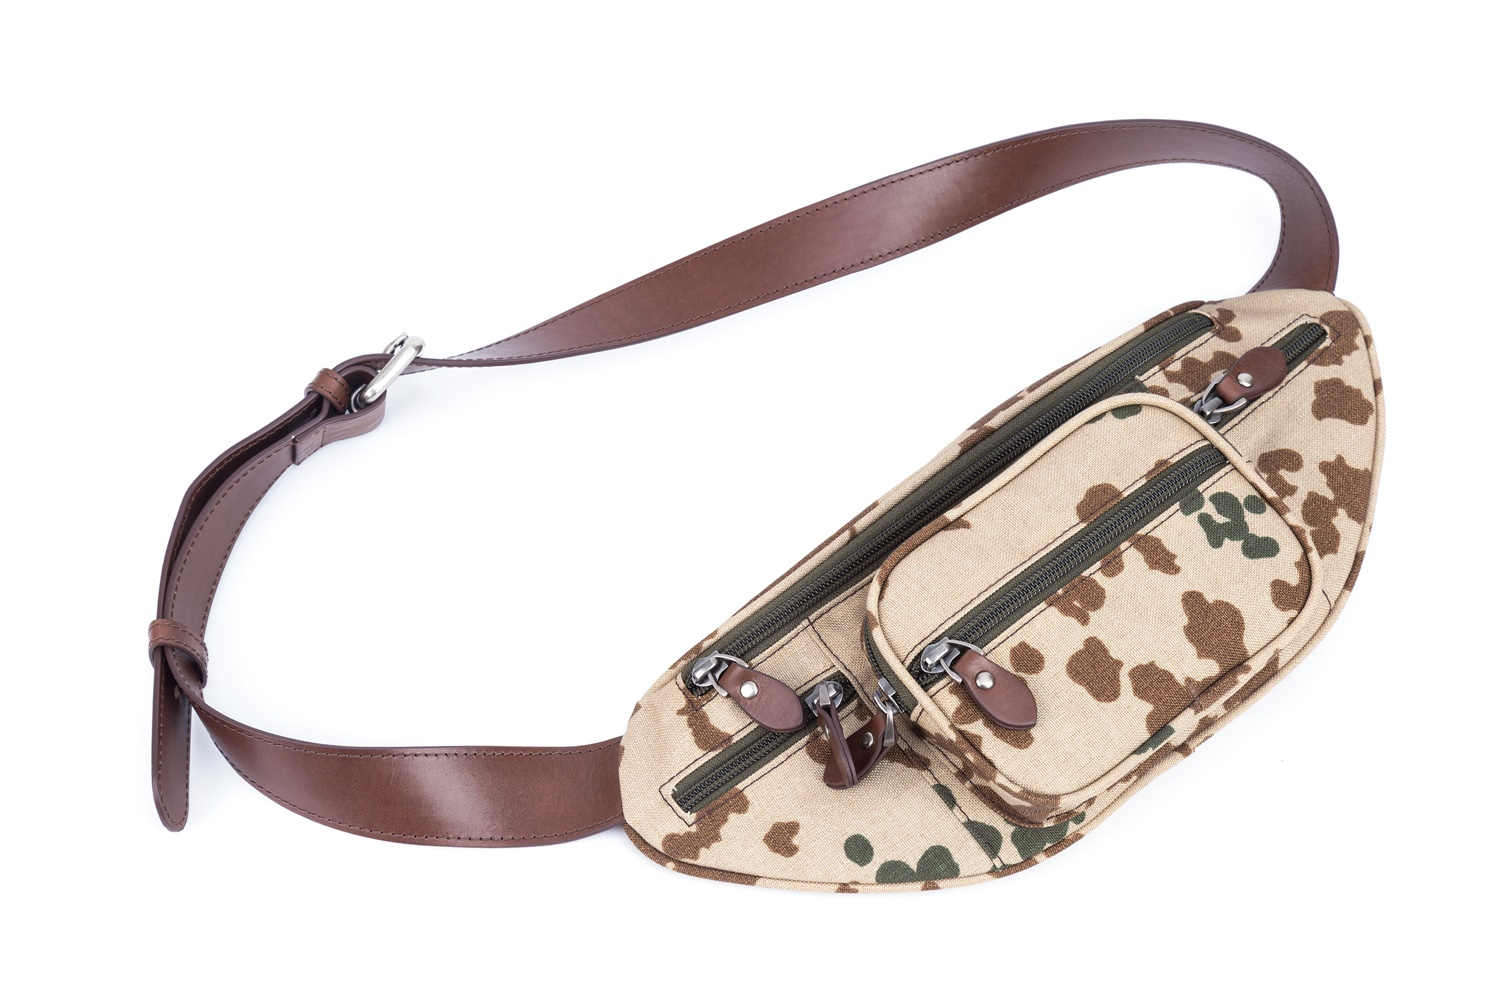 GF bags-Body Bag Genuine Leather Wax Leather Strap Camouflage Nylon Pocket-gaofeng Bags-6